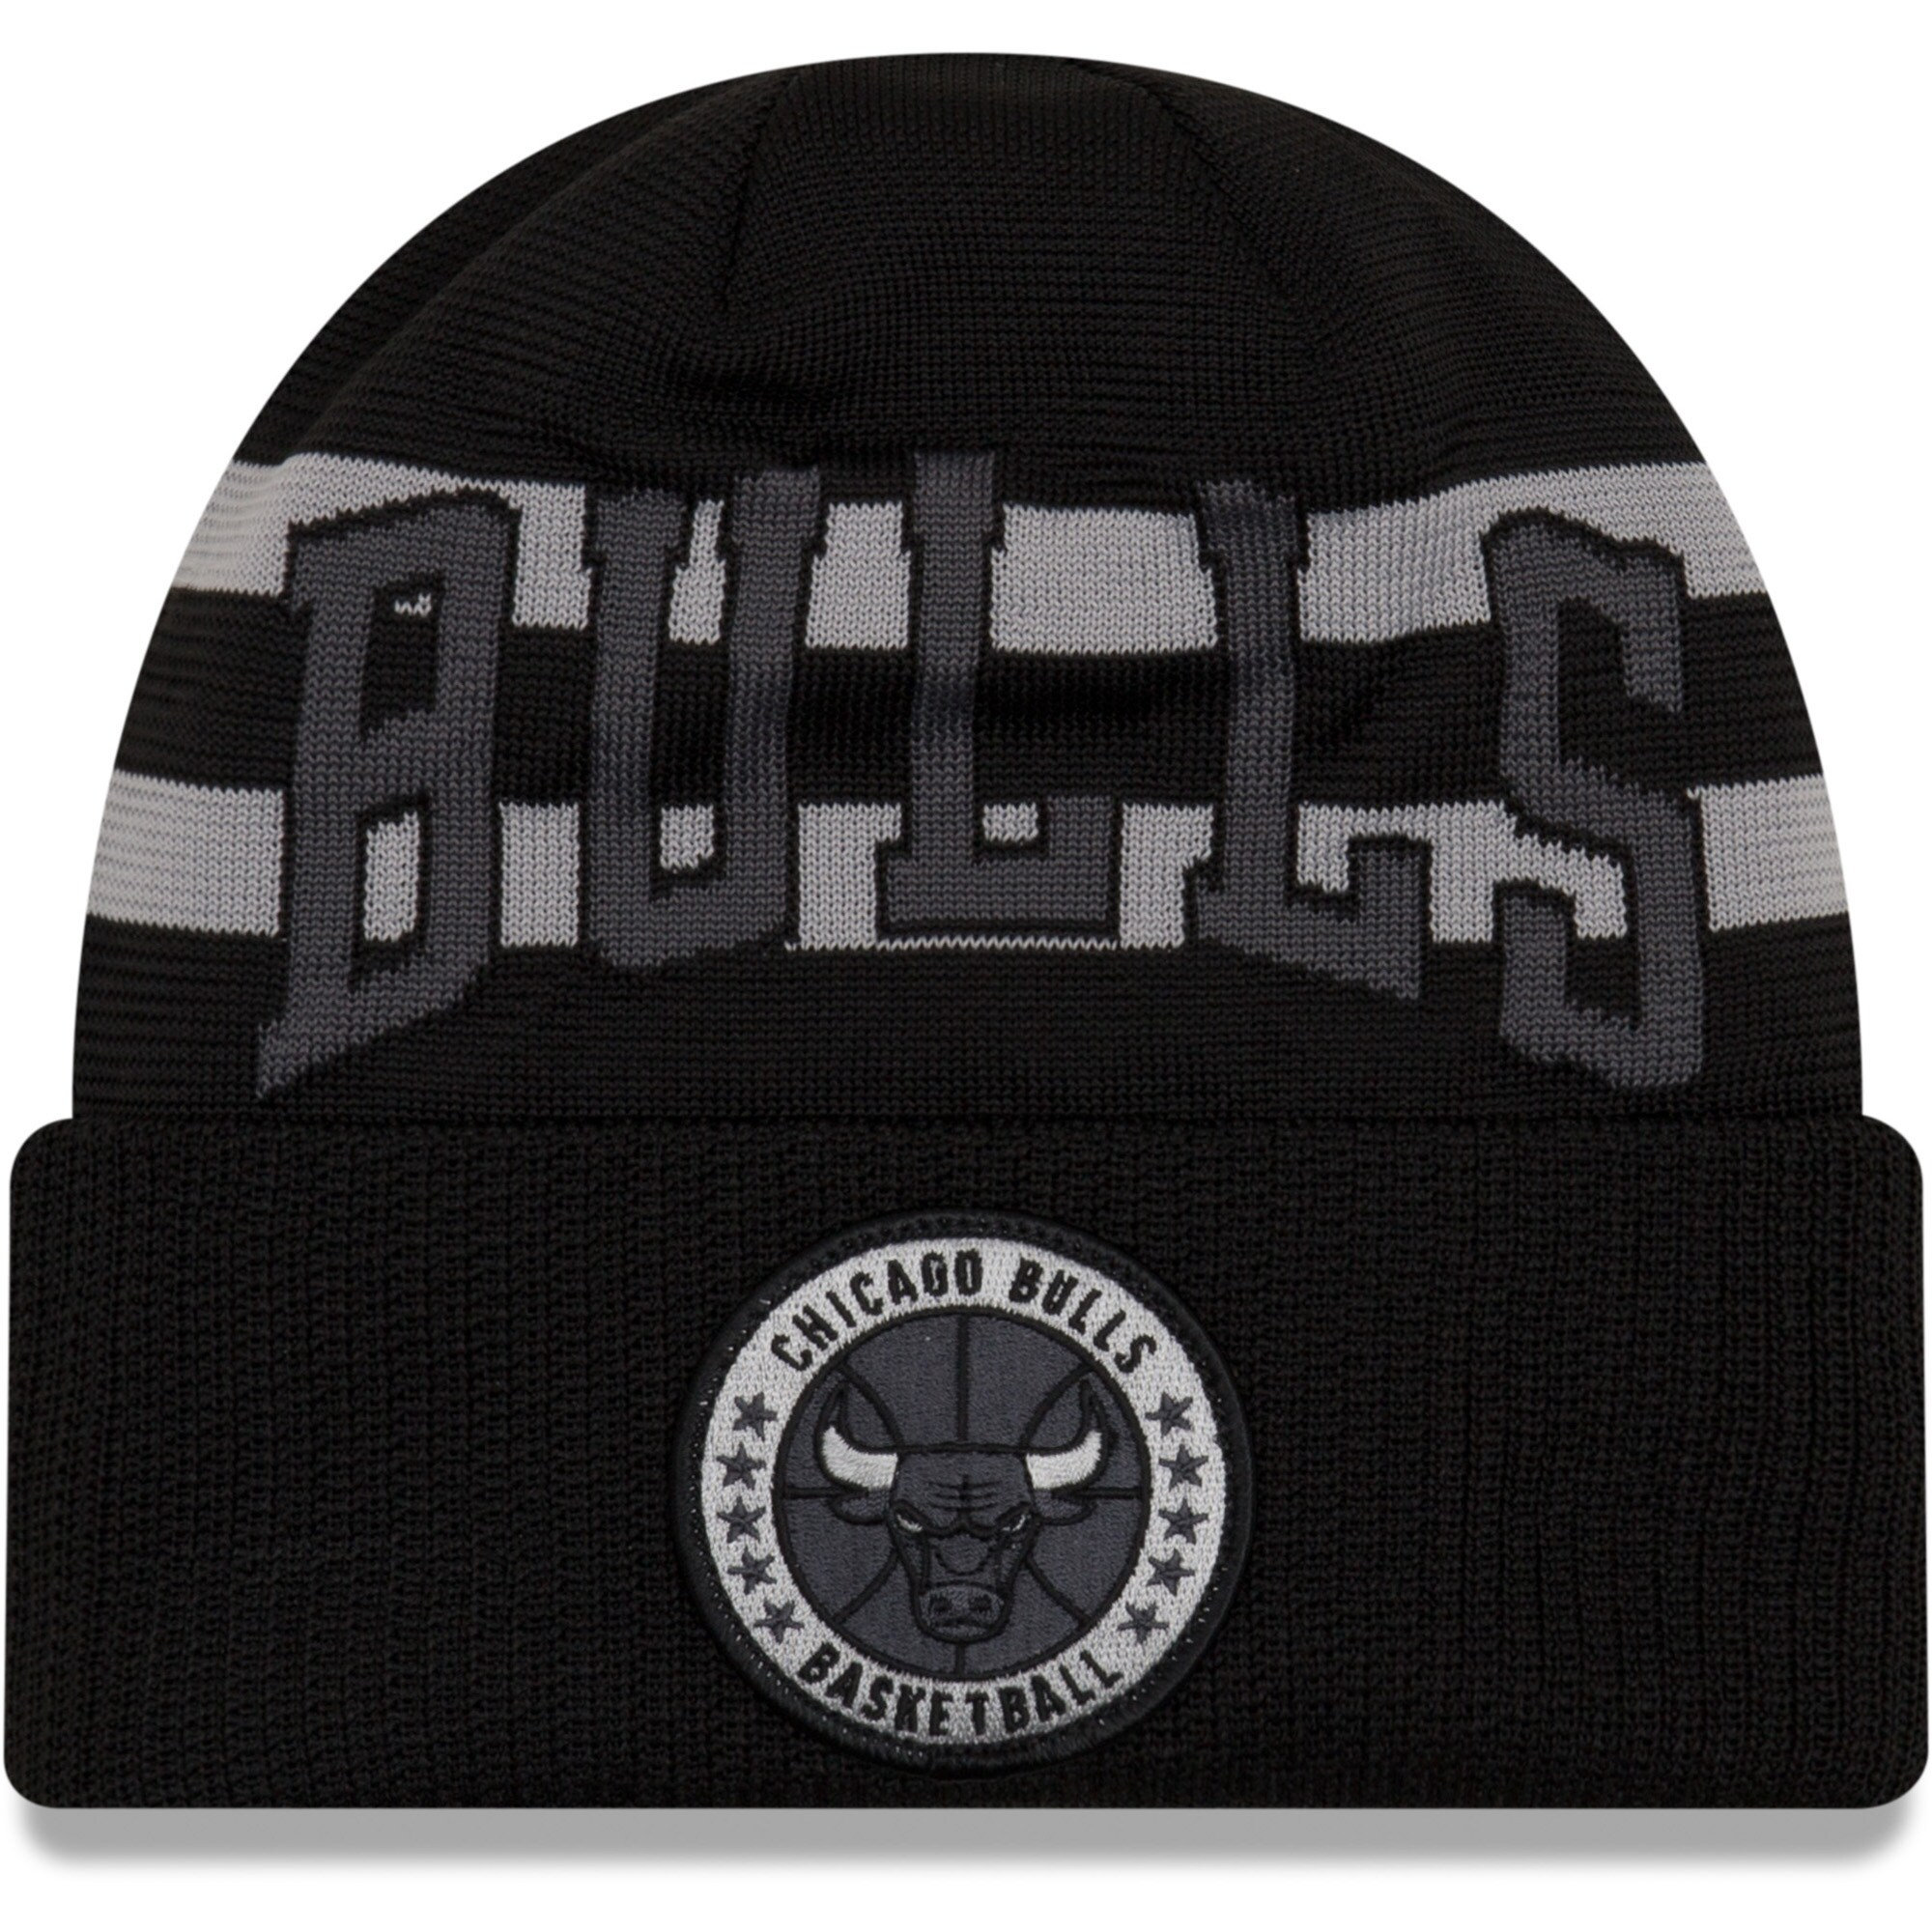 Chicago Bulls New Era 2018 Tip Off Series Cuffed Knit Hat - Black